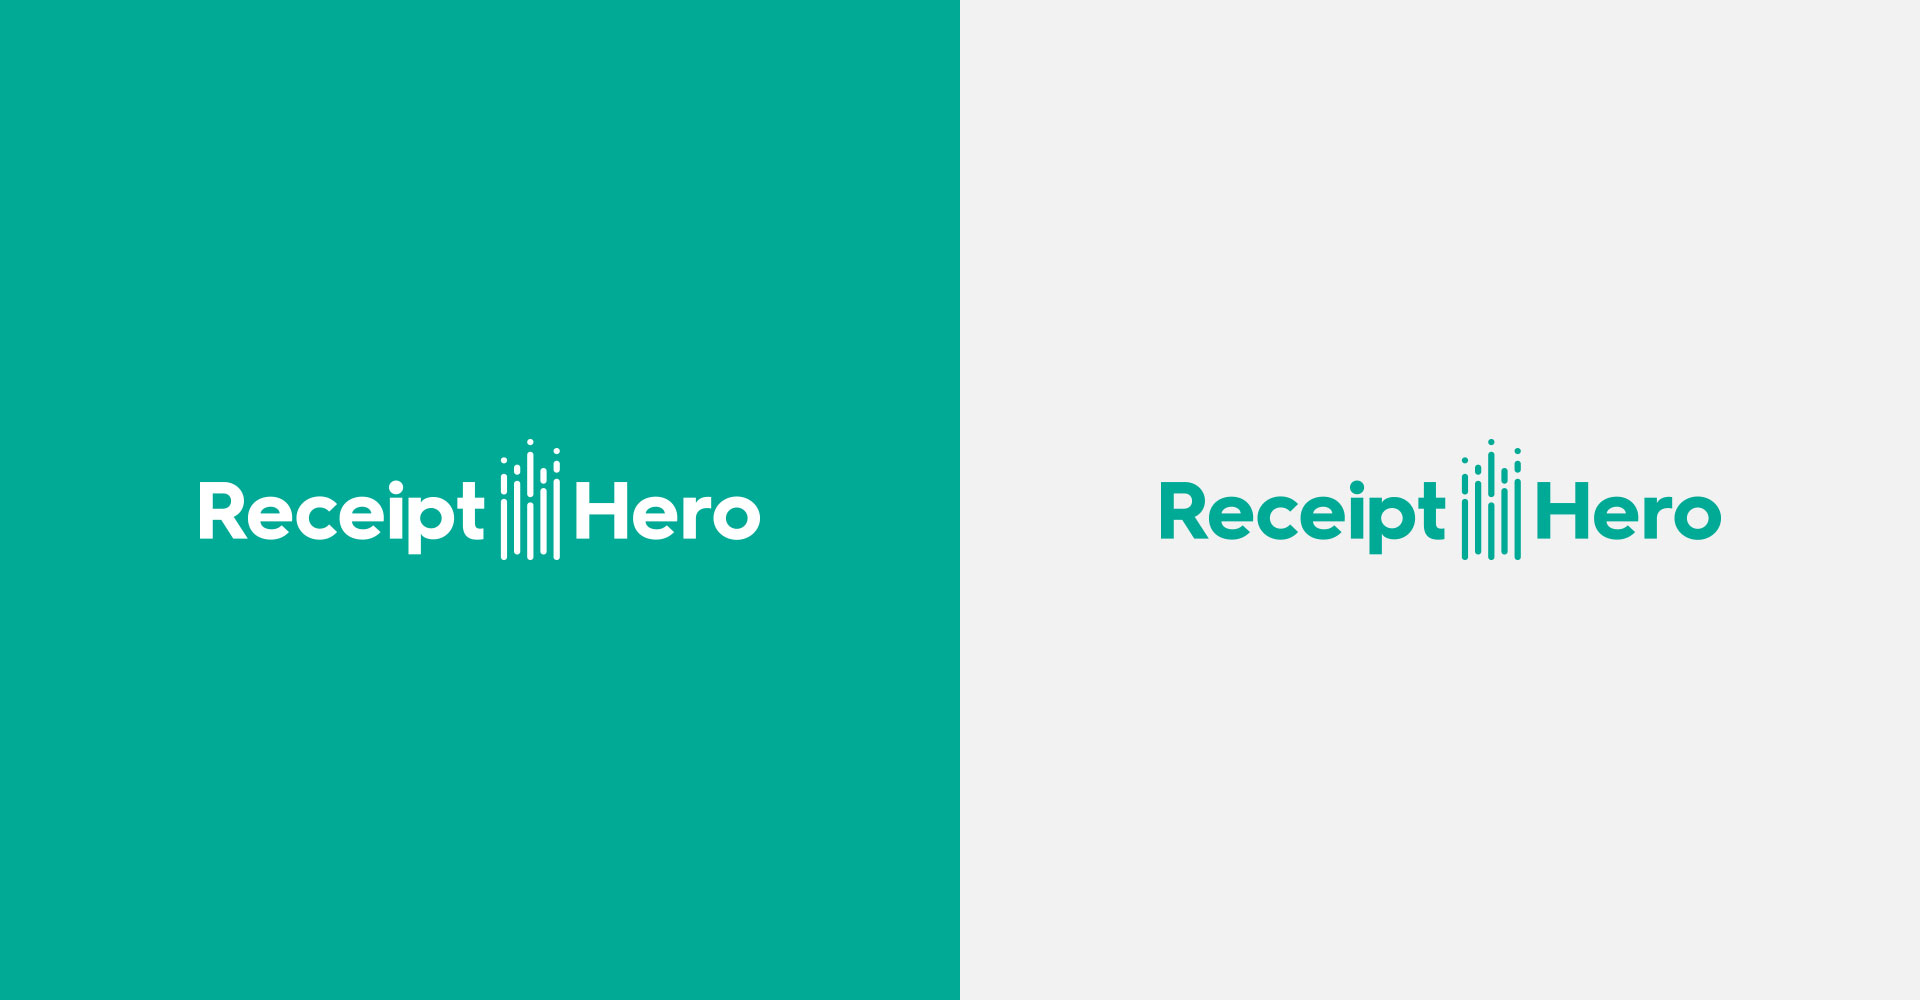 Receipt Hero logo